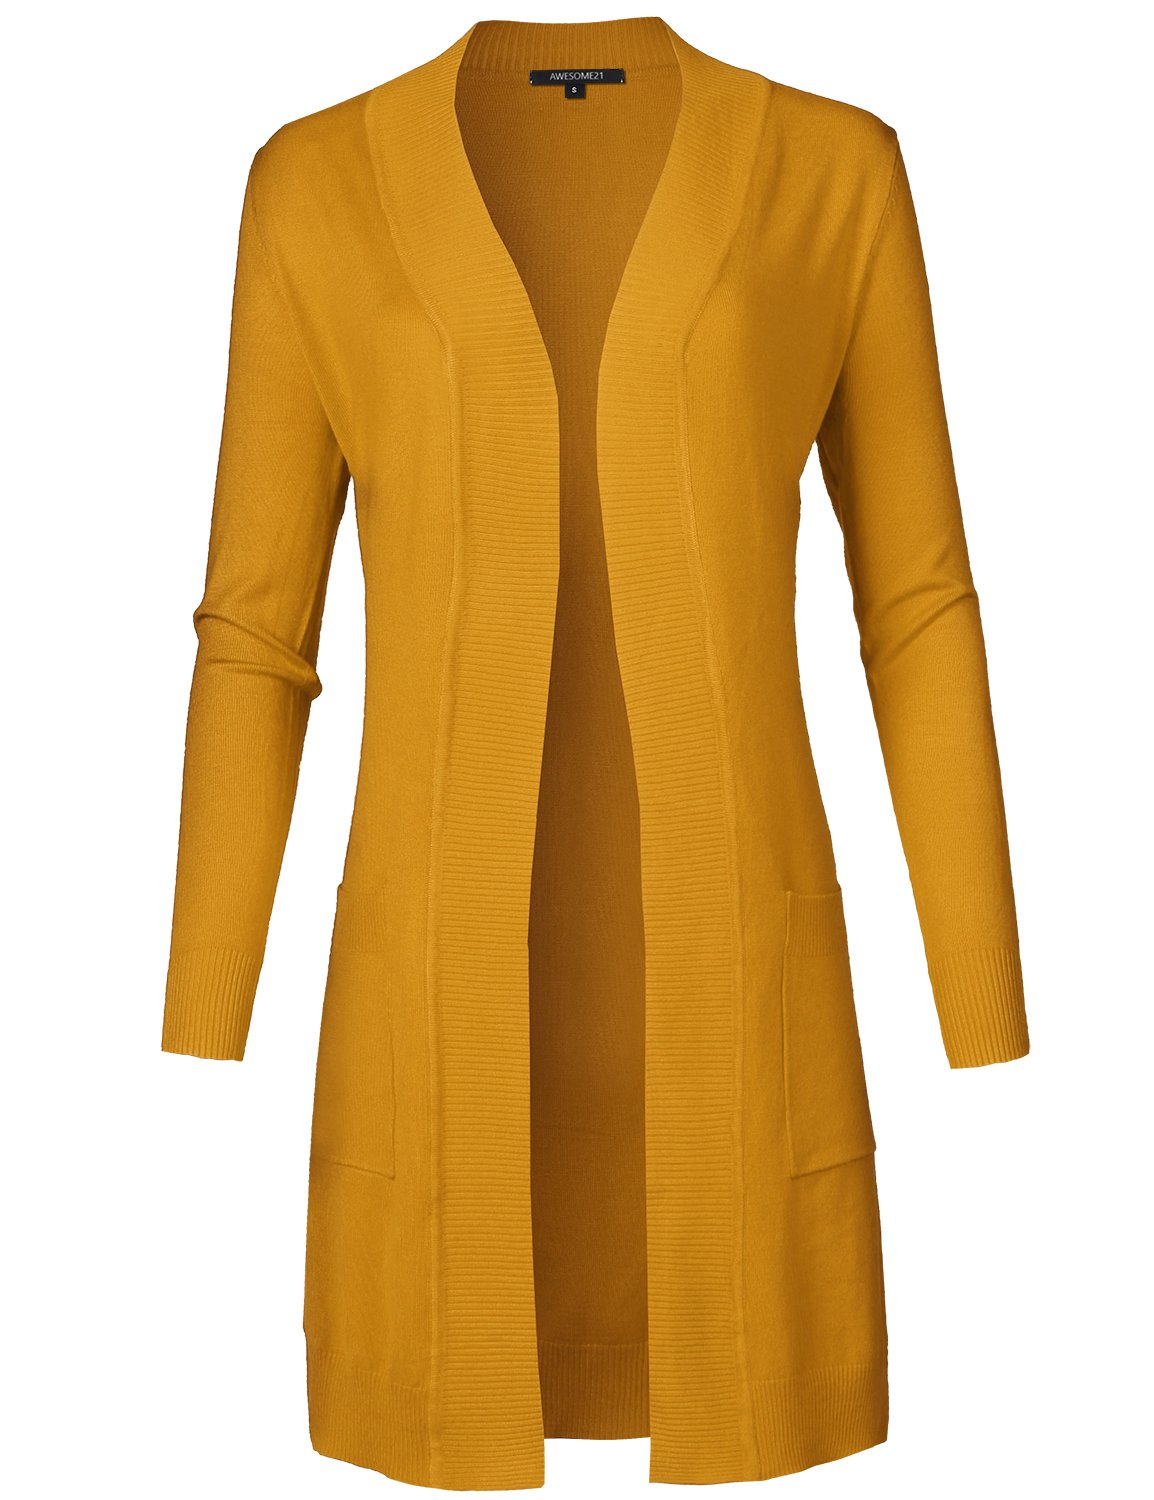 Awesome21 Solid Soft Stretch Longline Long Sleeve Open Front Knit Cardigan Mustard Size M